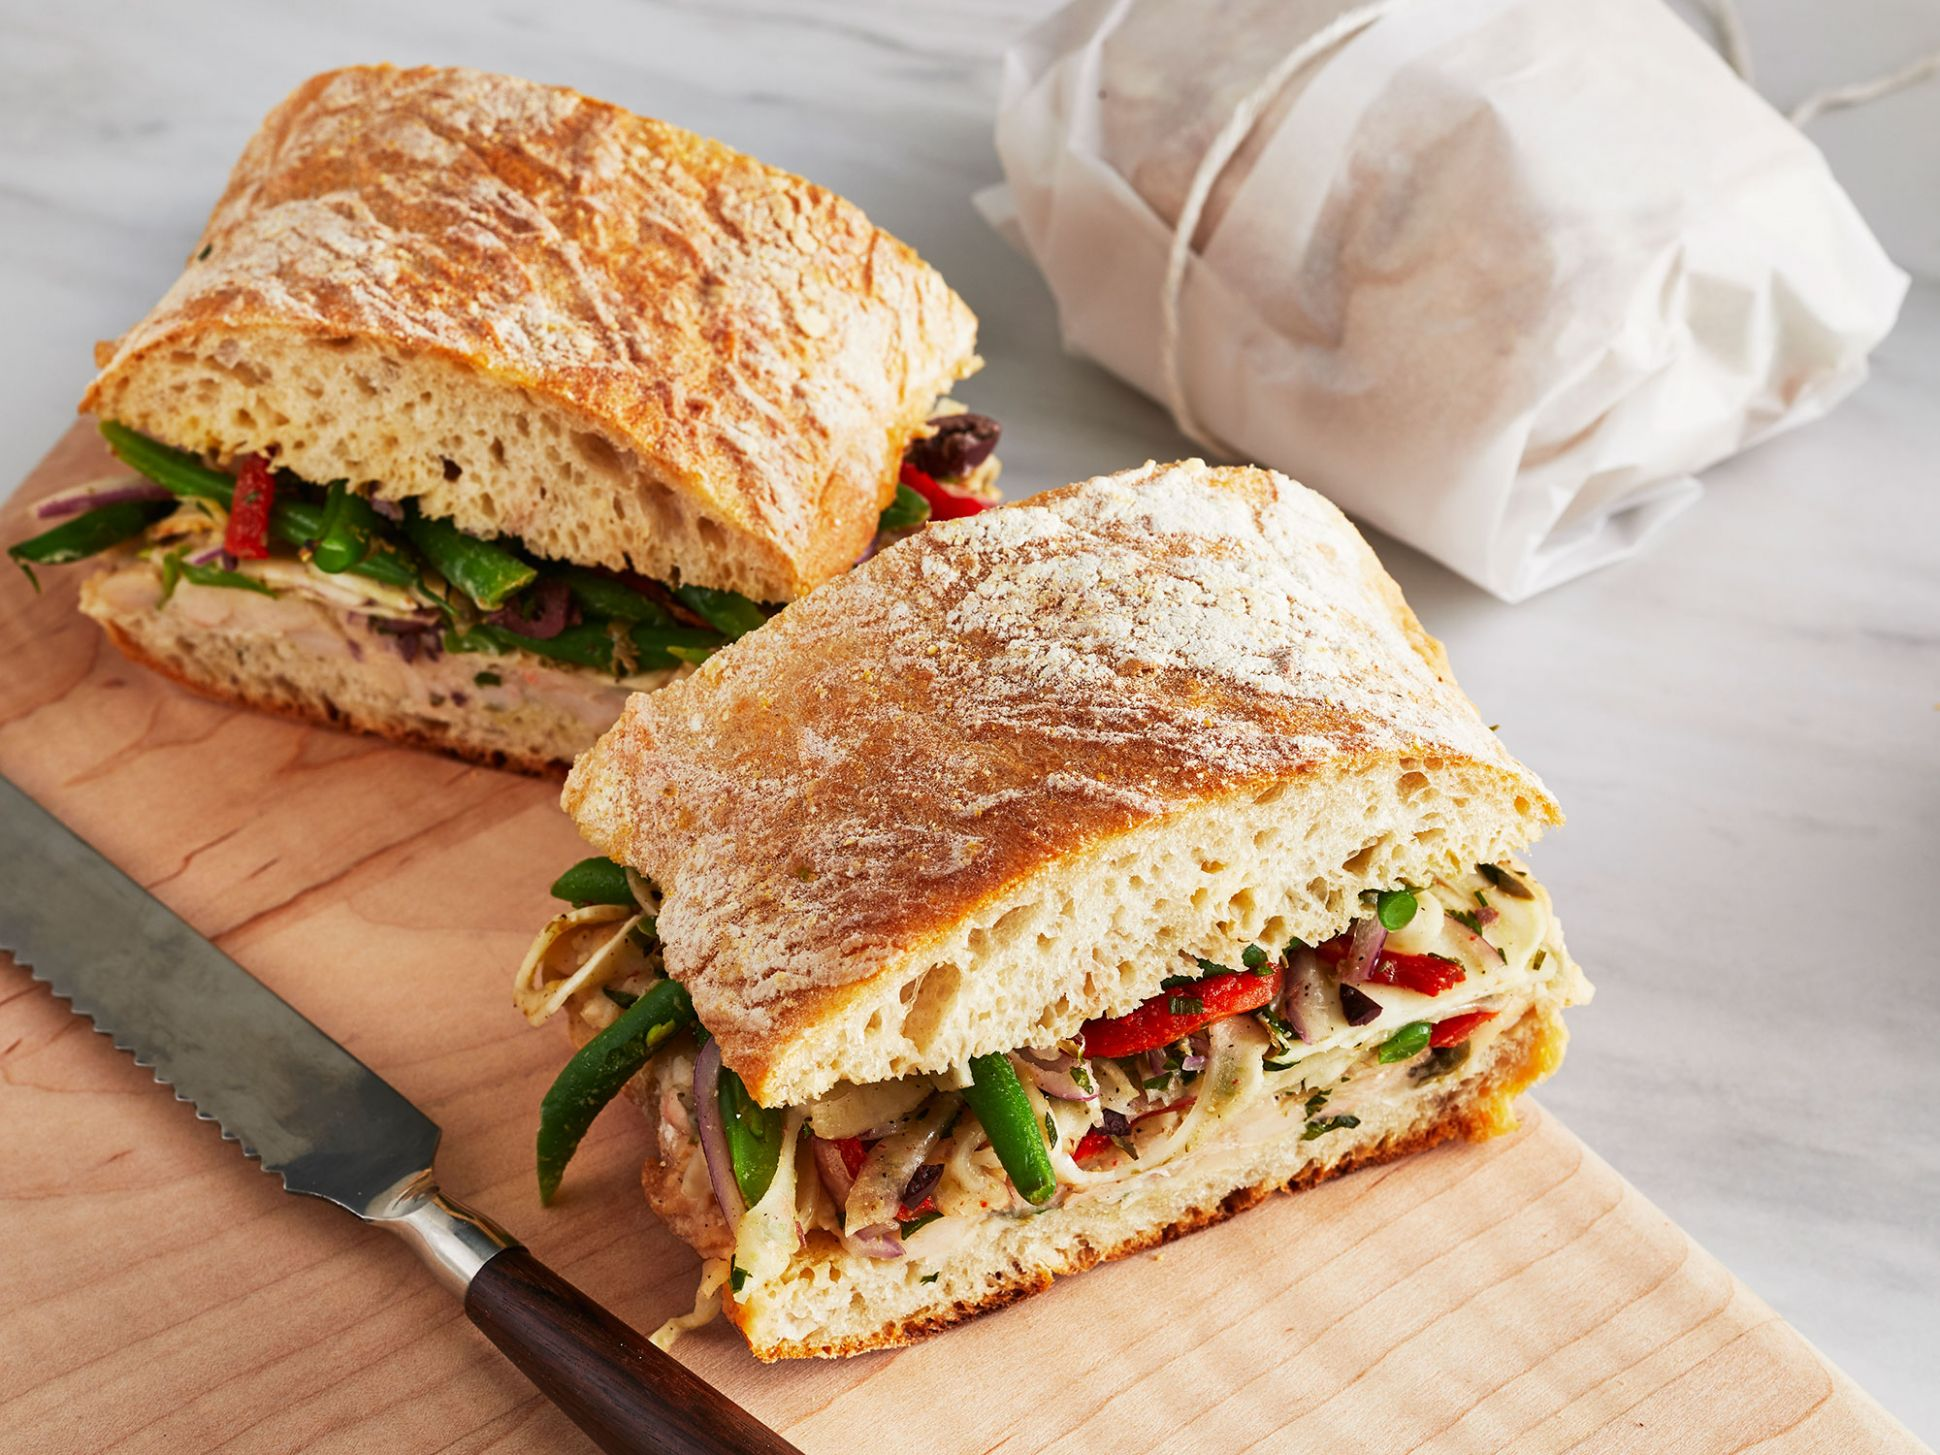 10 Healthy Sandwiches Ideas | Cooking Light - Sandwich Recipes Lunch Healthy